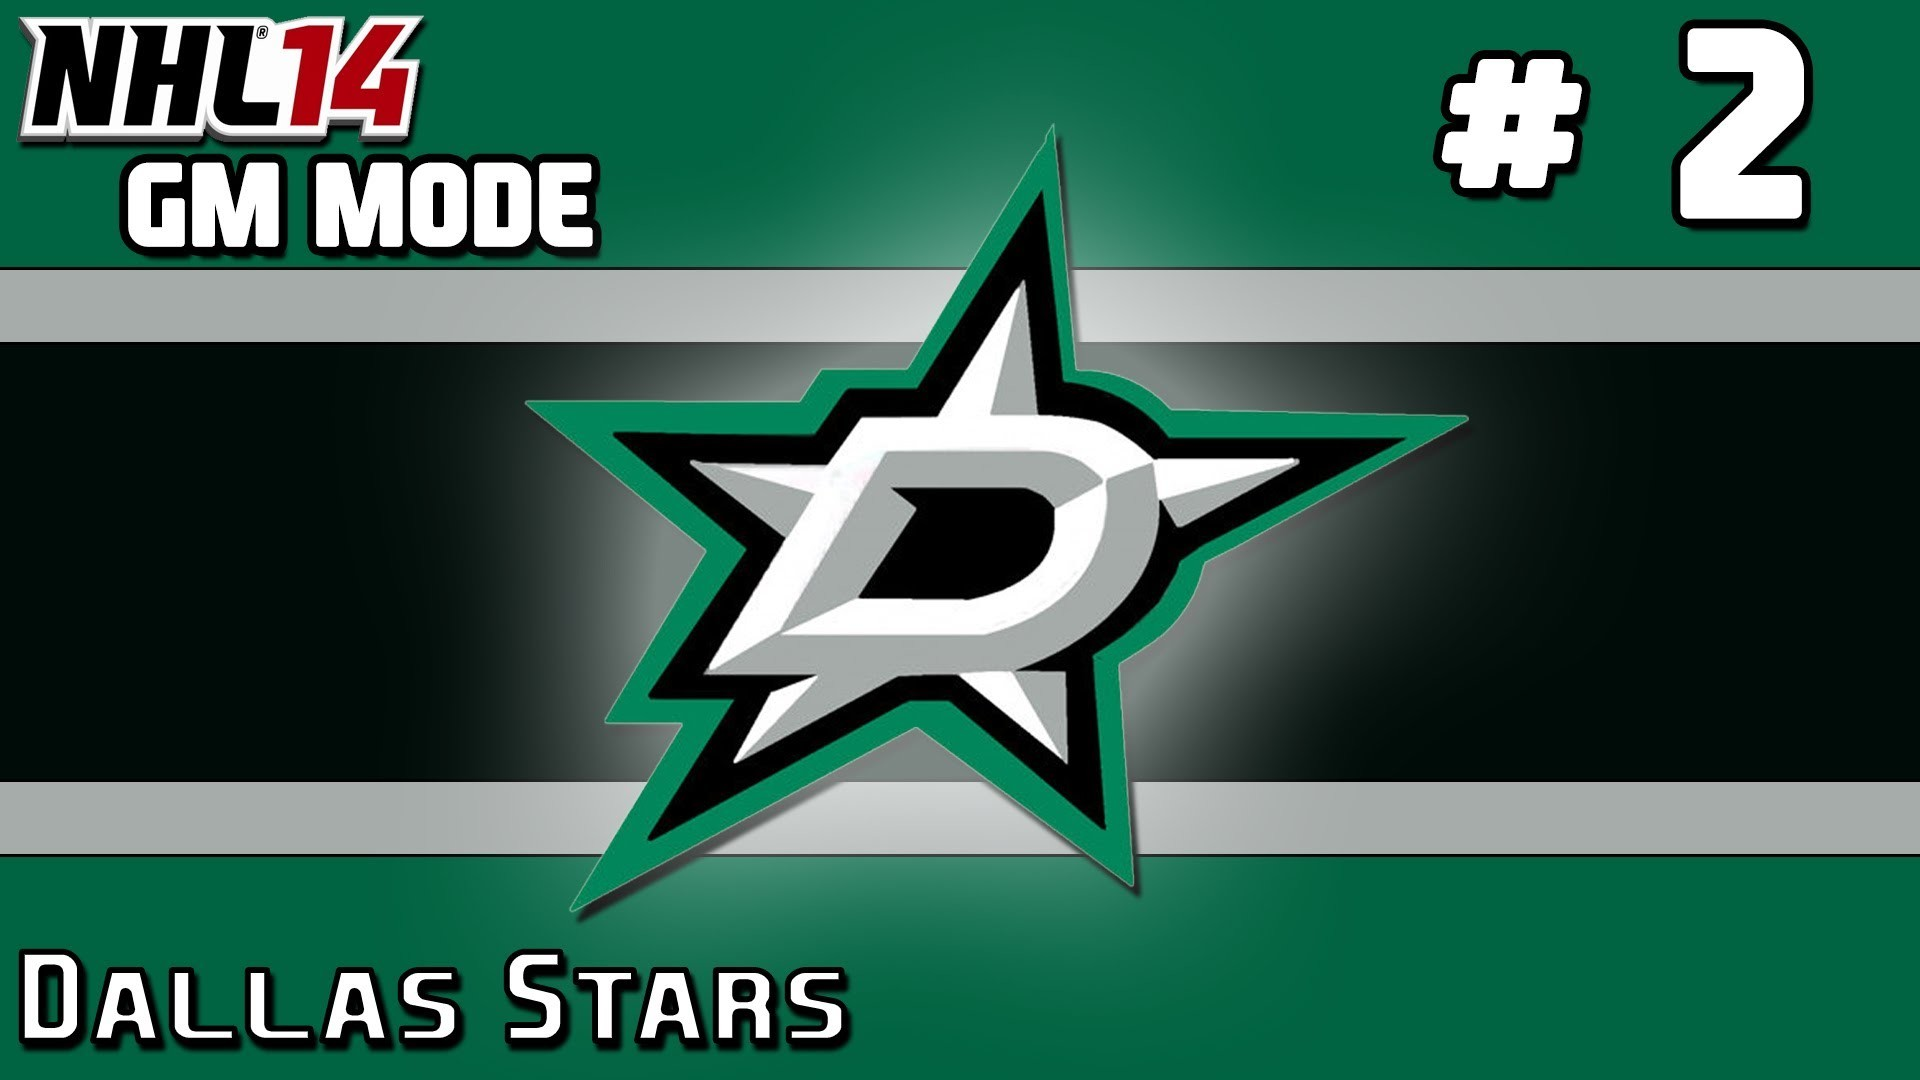 NHL 14: GM Mode Commentary – Dallas Stars ep. 2 – Making A Trade – YouTube